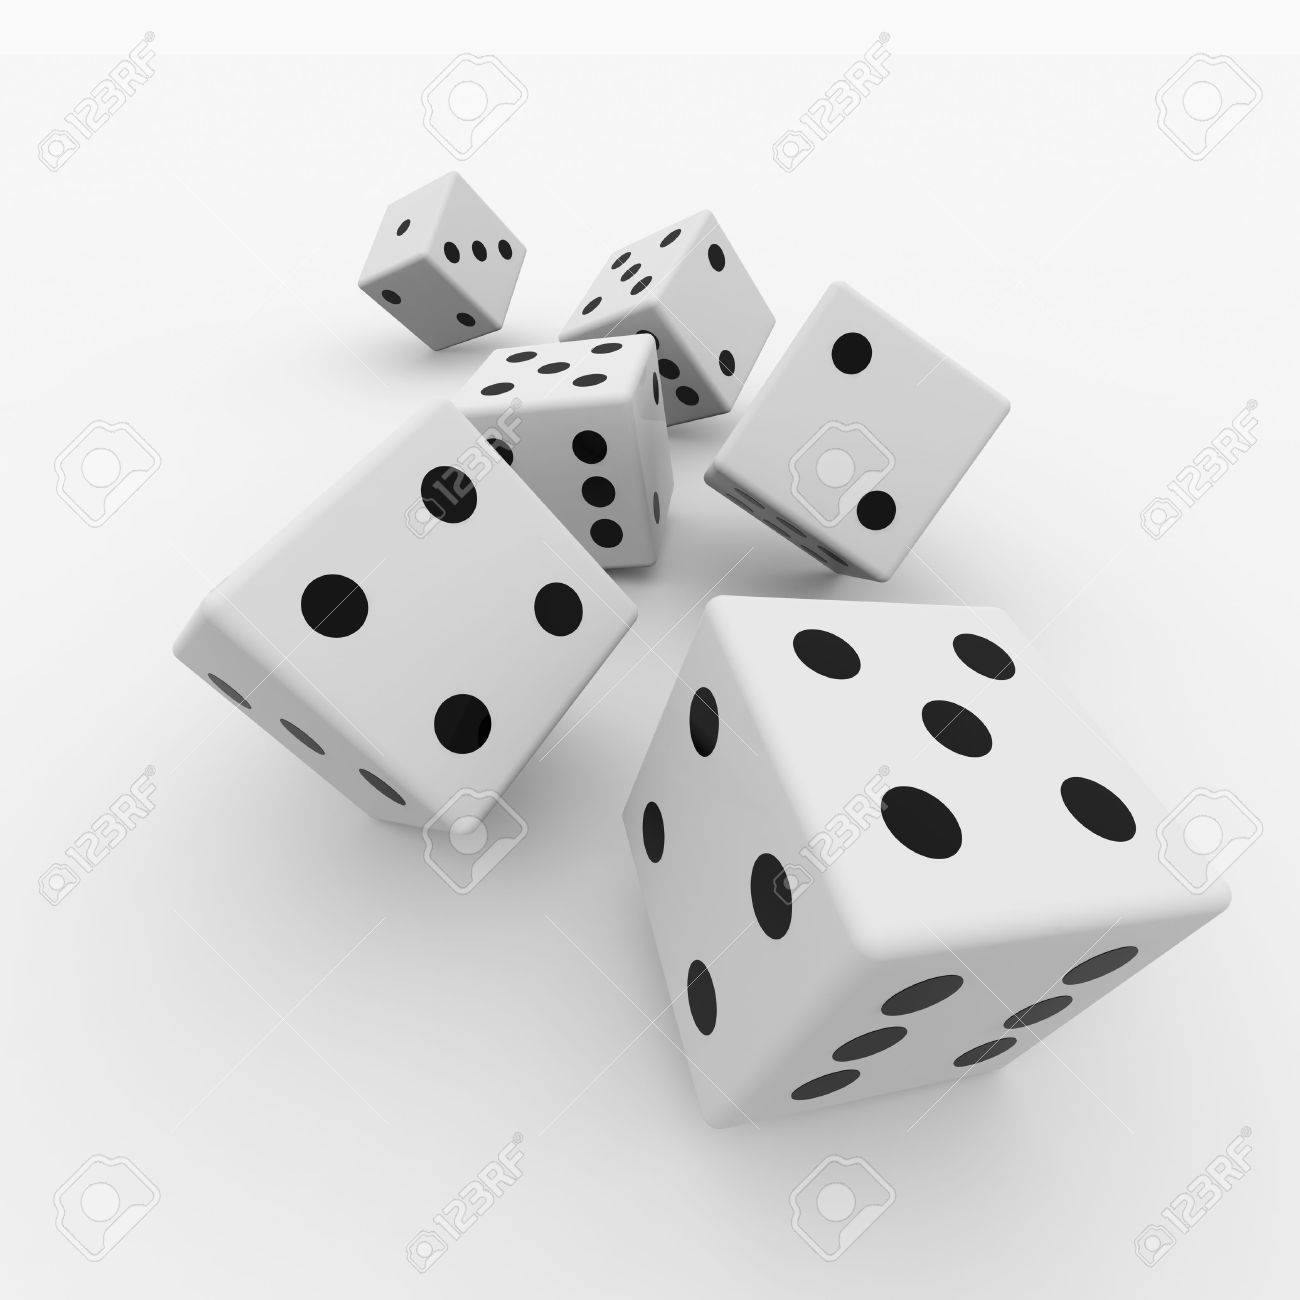 White dices isolated on white. Computer generated image. Stock Photo - 10551933